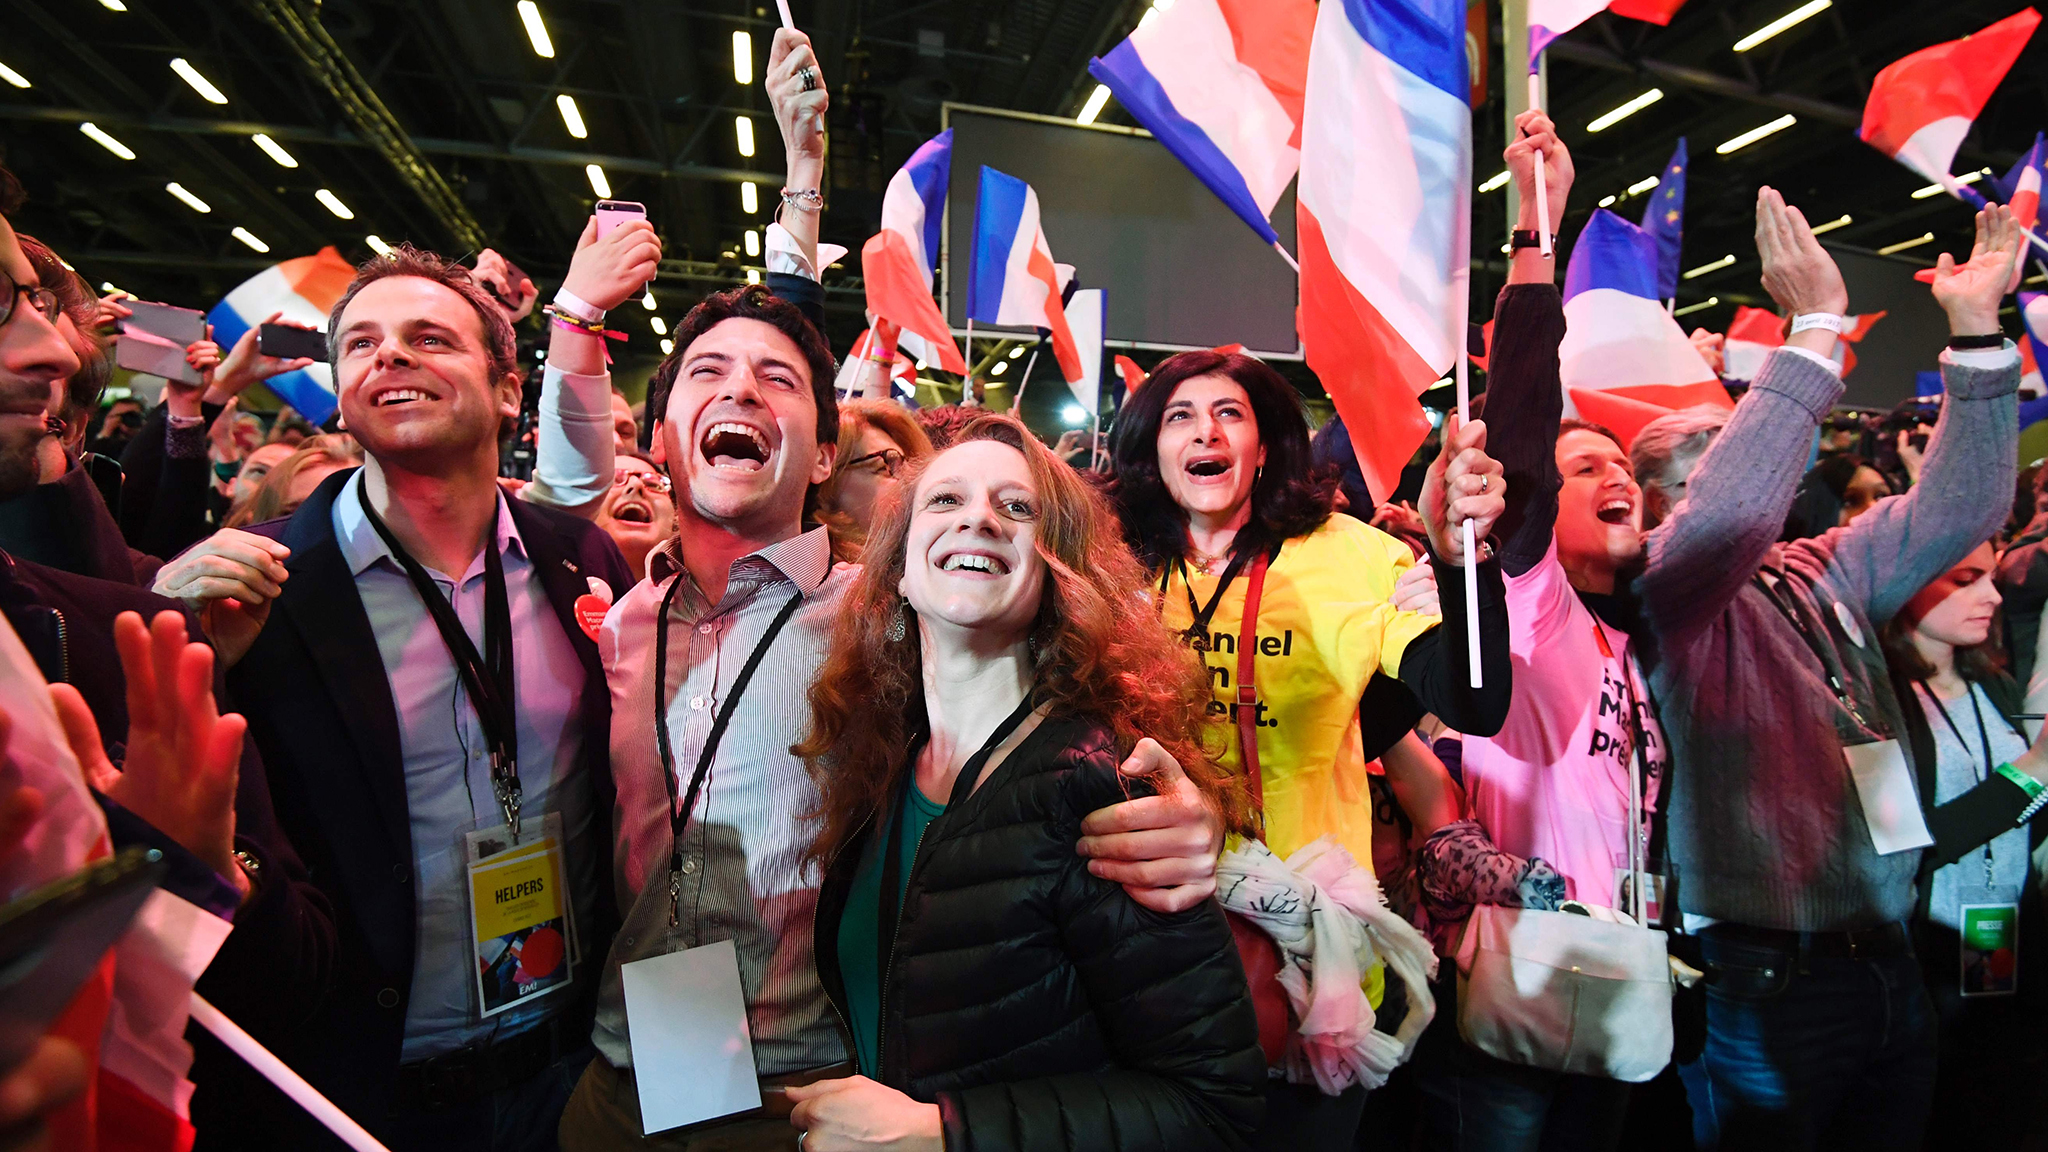 France elections 2017 live - The French Blue Chip Index The Cac 40 Has Joined The Wider Market Rally Jumping 4 Per Cent At The Open Led By The Banks